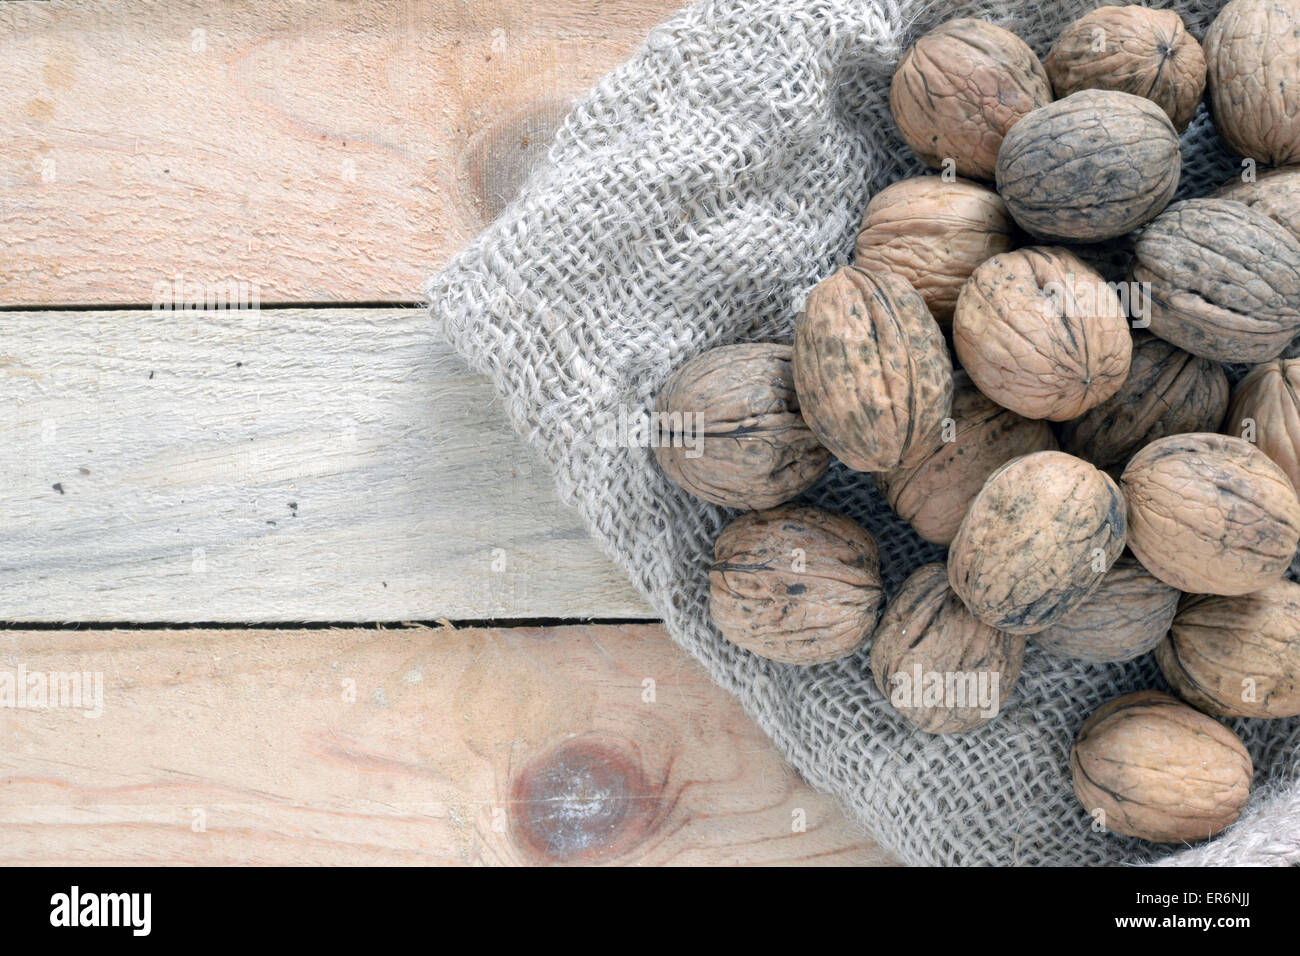 Some walnuts on a sack on a wooden table of a rustik kitchen. - Stock Image